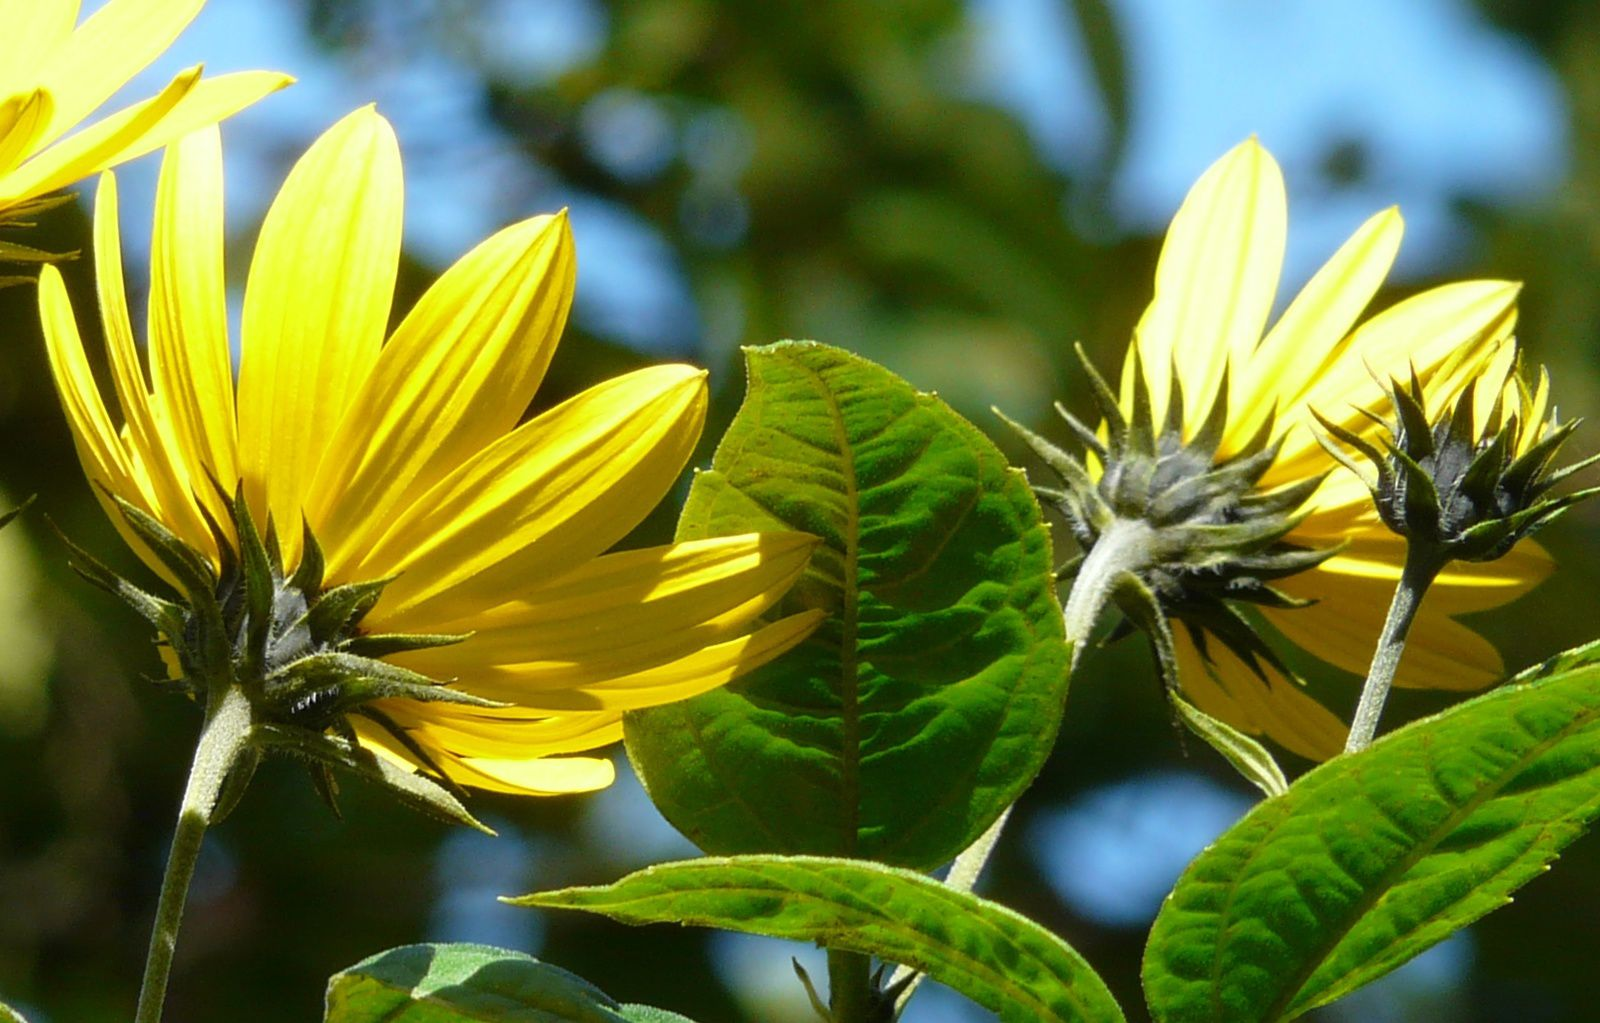 topinambours, Helianthus tuberosus, photos de Nicole